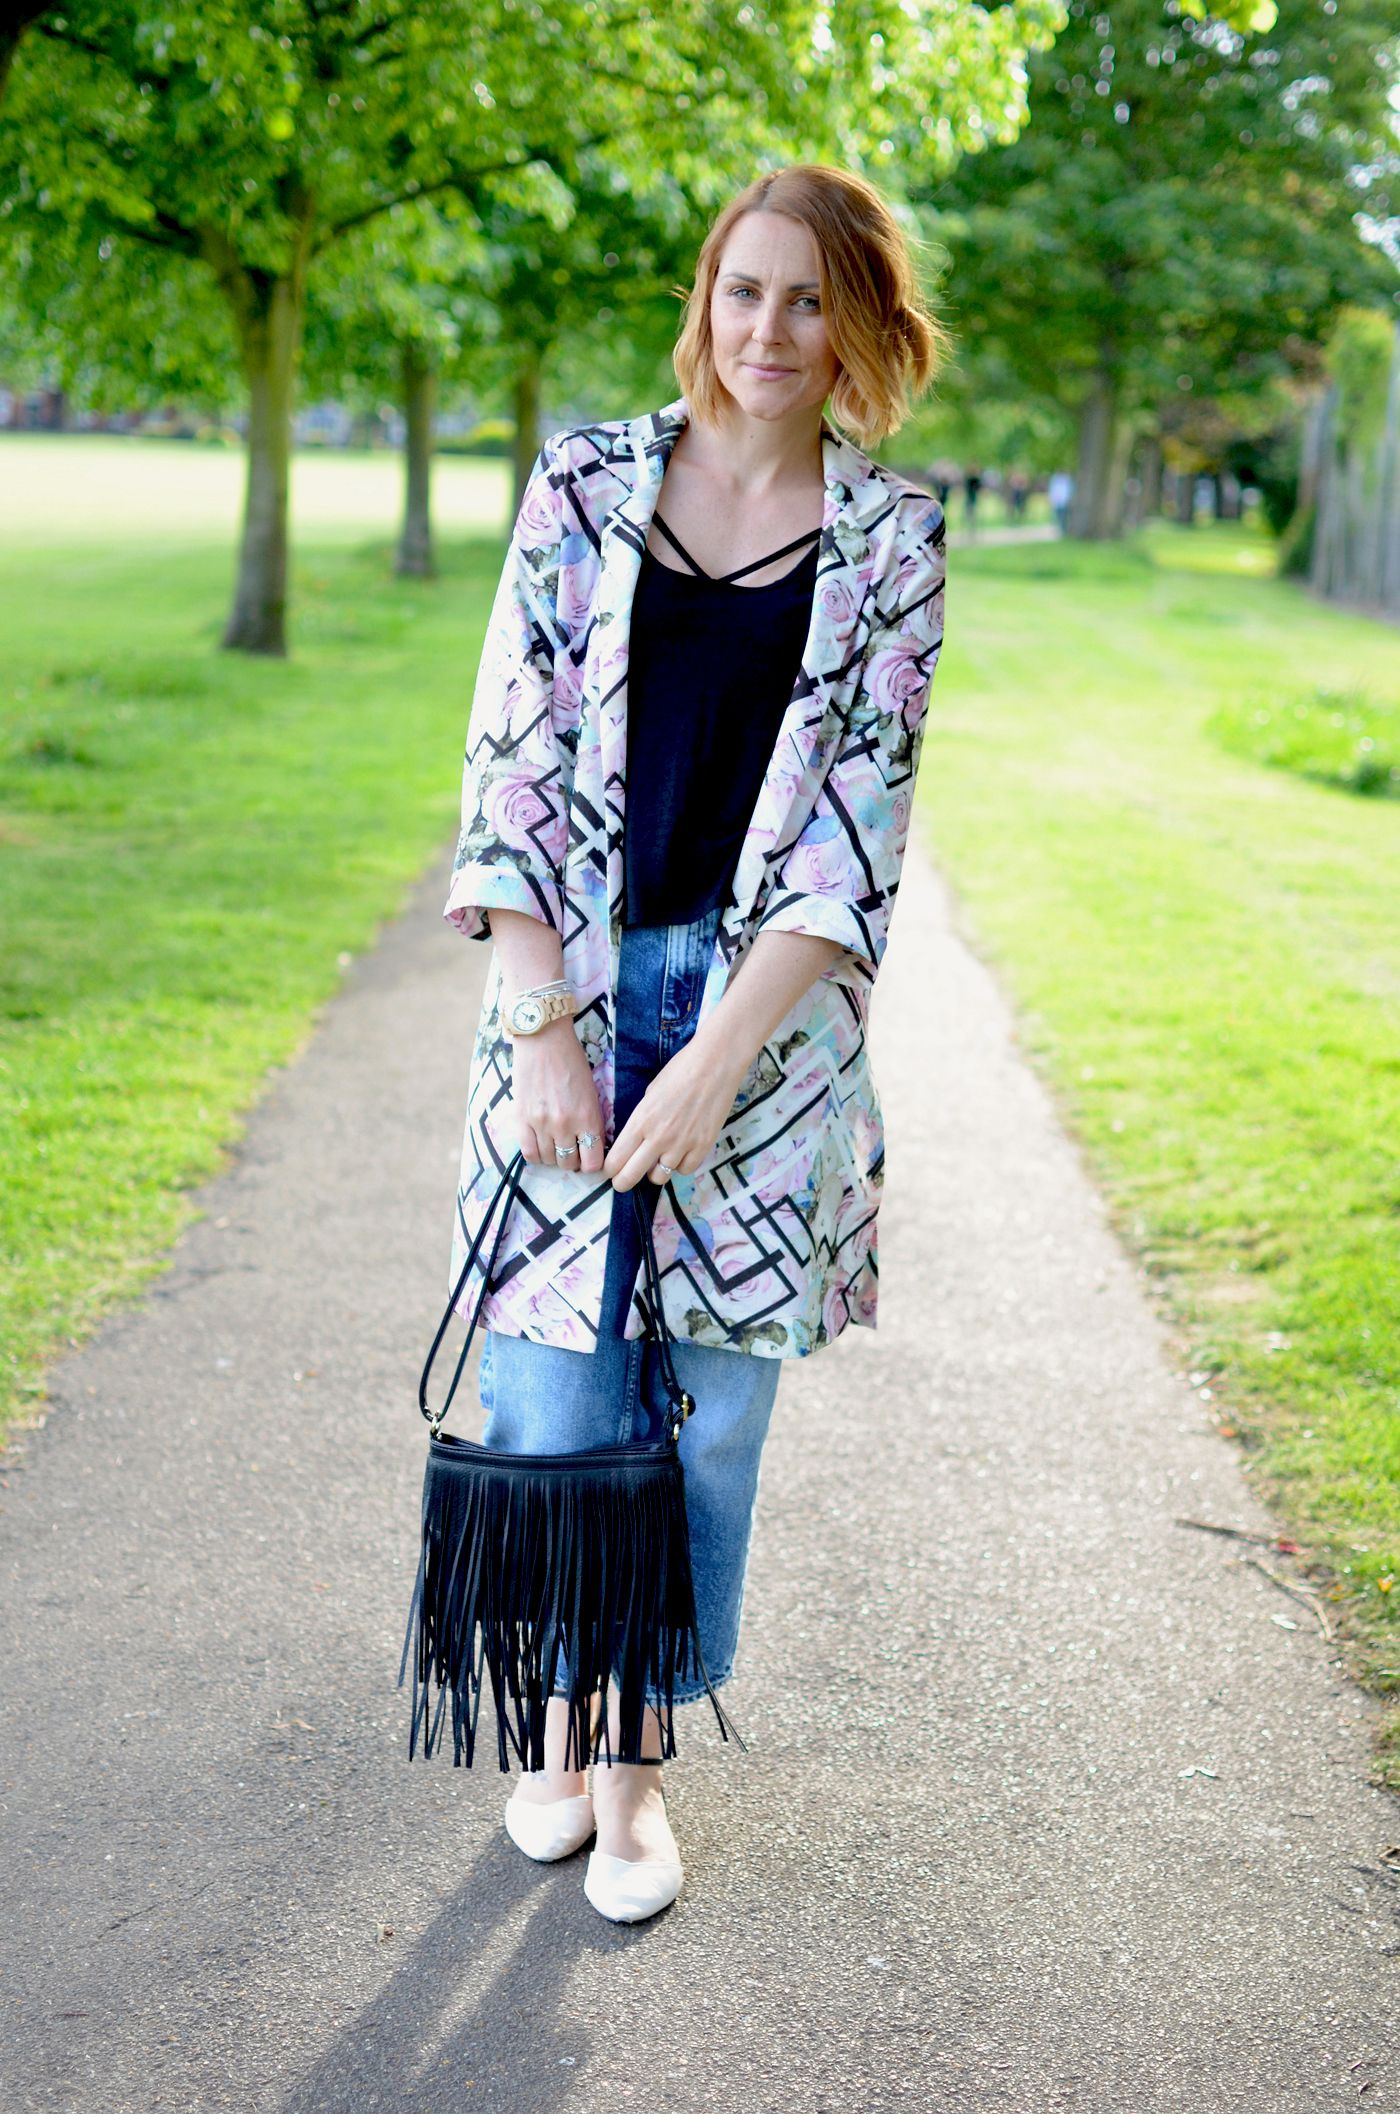 Pink duster coat and jeans